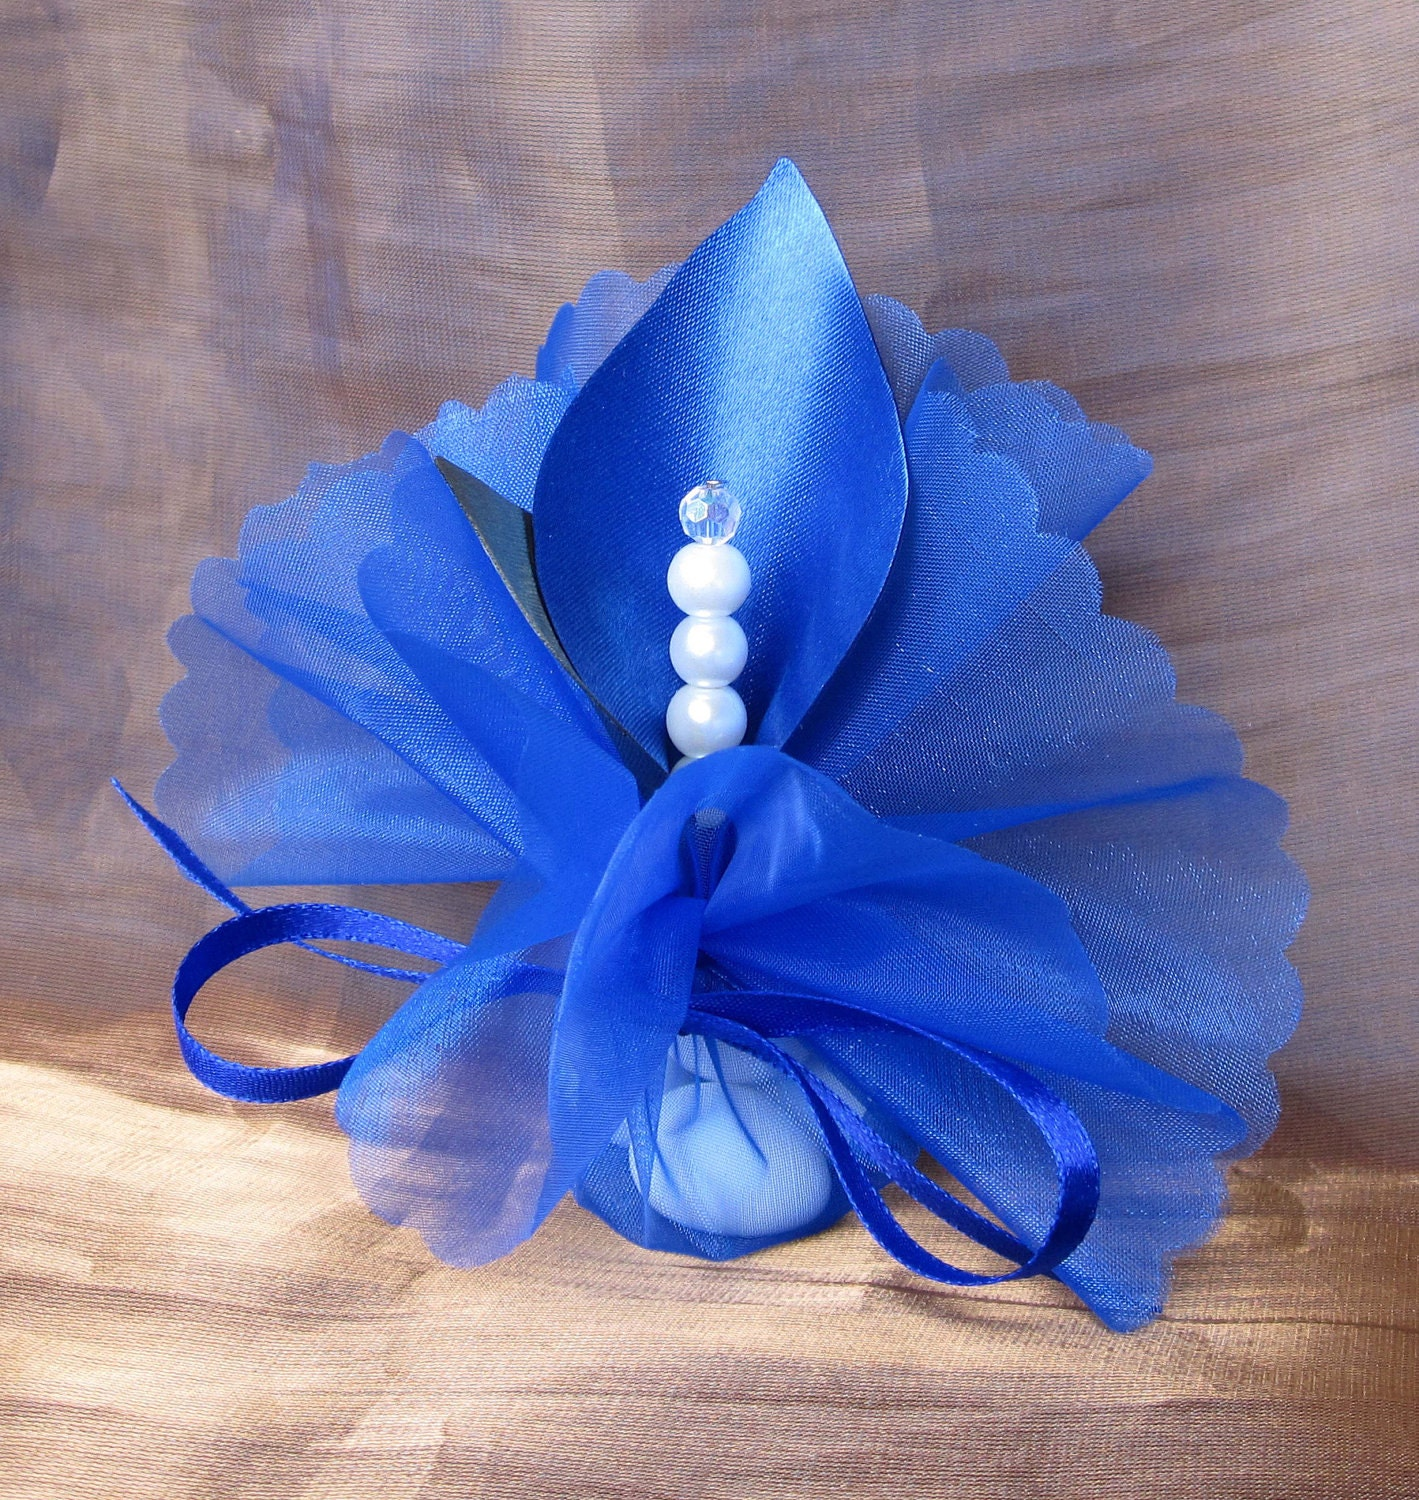 Blue Wedding Table Decorations: Wedding Favors Table Decoration Calla Lily Crystal By Adiart1